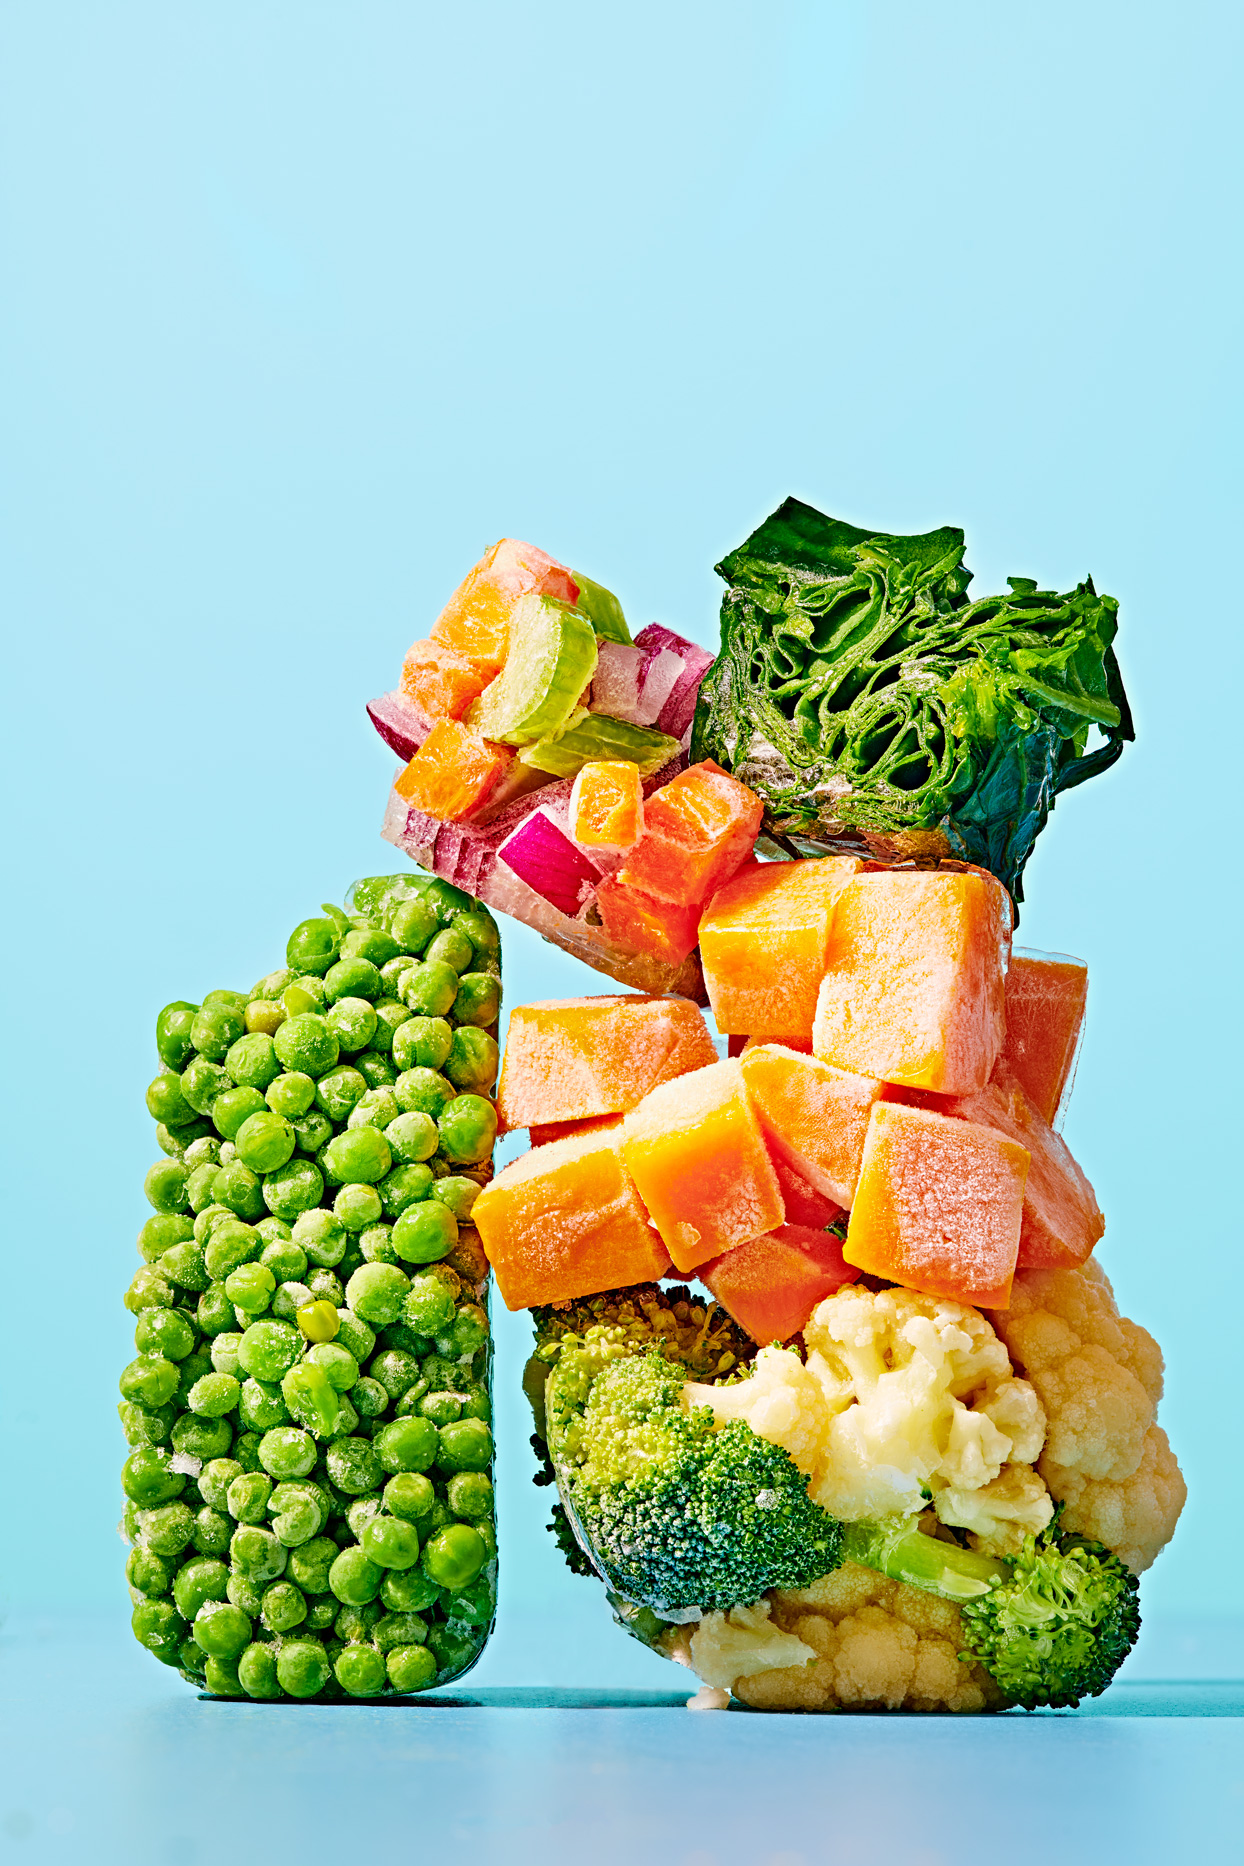 frozen vegetables including peas, corn and spinach stacked on a blue background